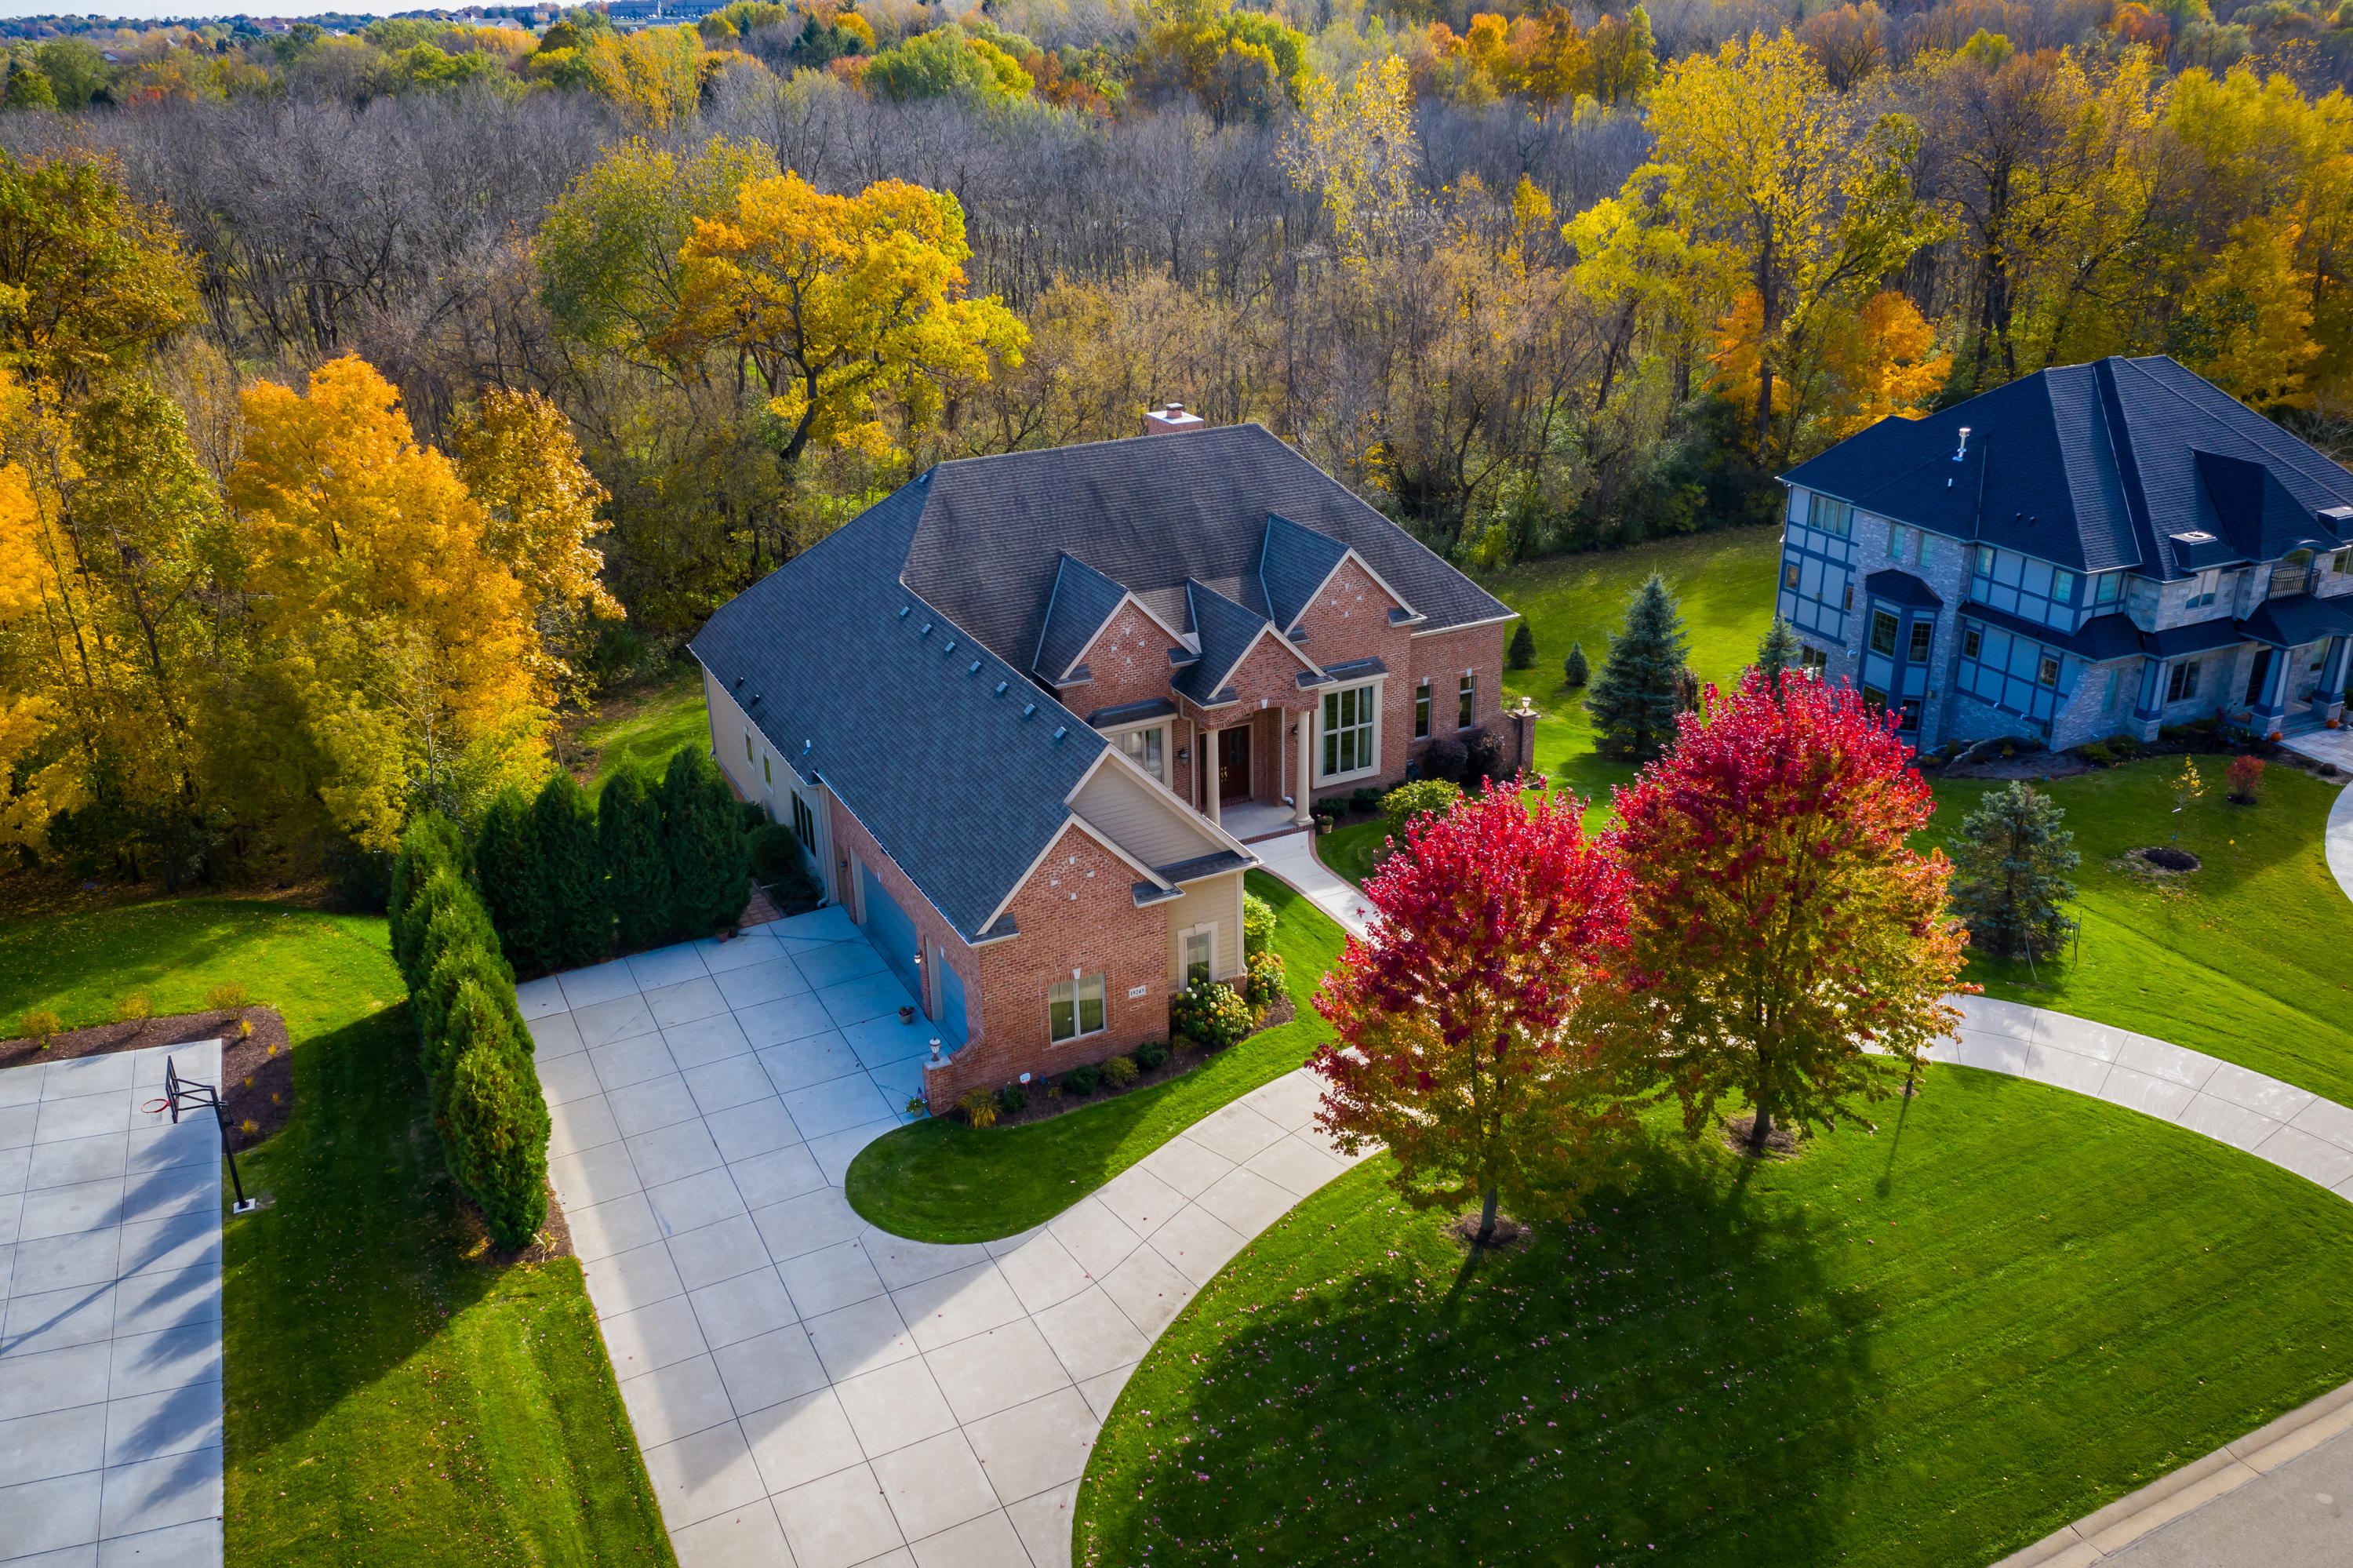 Photo of 19245 Rivendell Dr, Brookfield, WI 53045